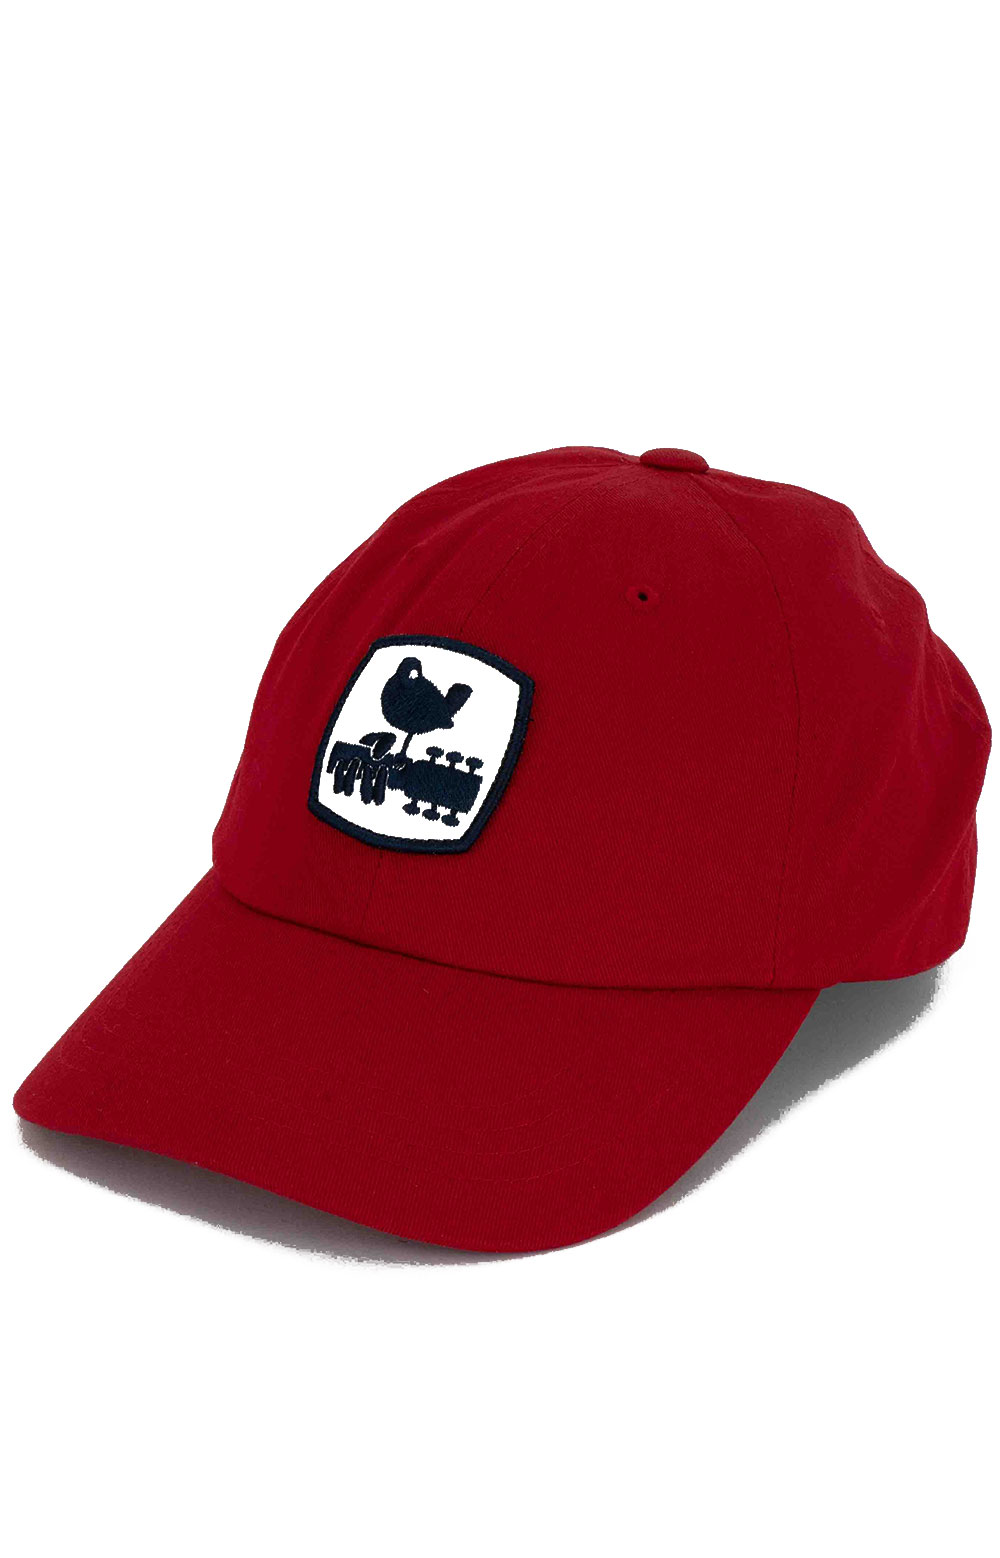 Huf. Woodstock Staff Hat - Red